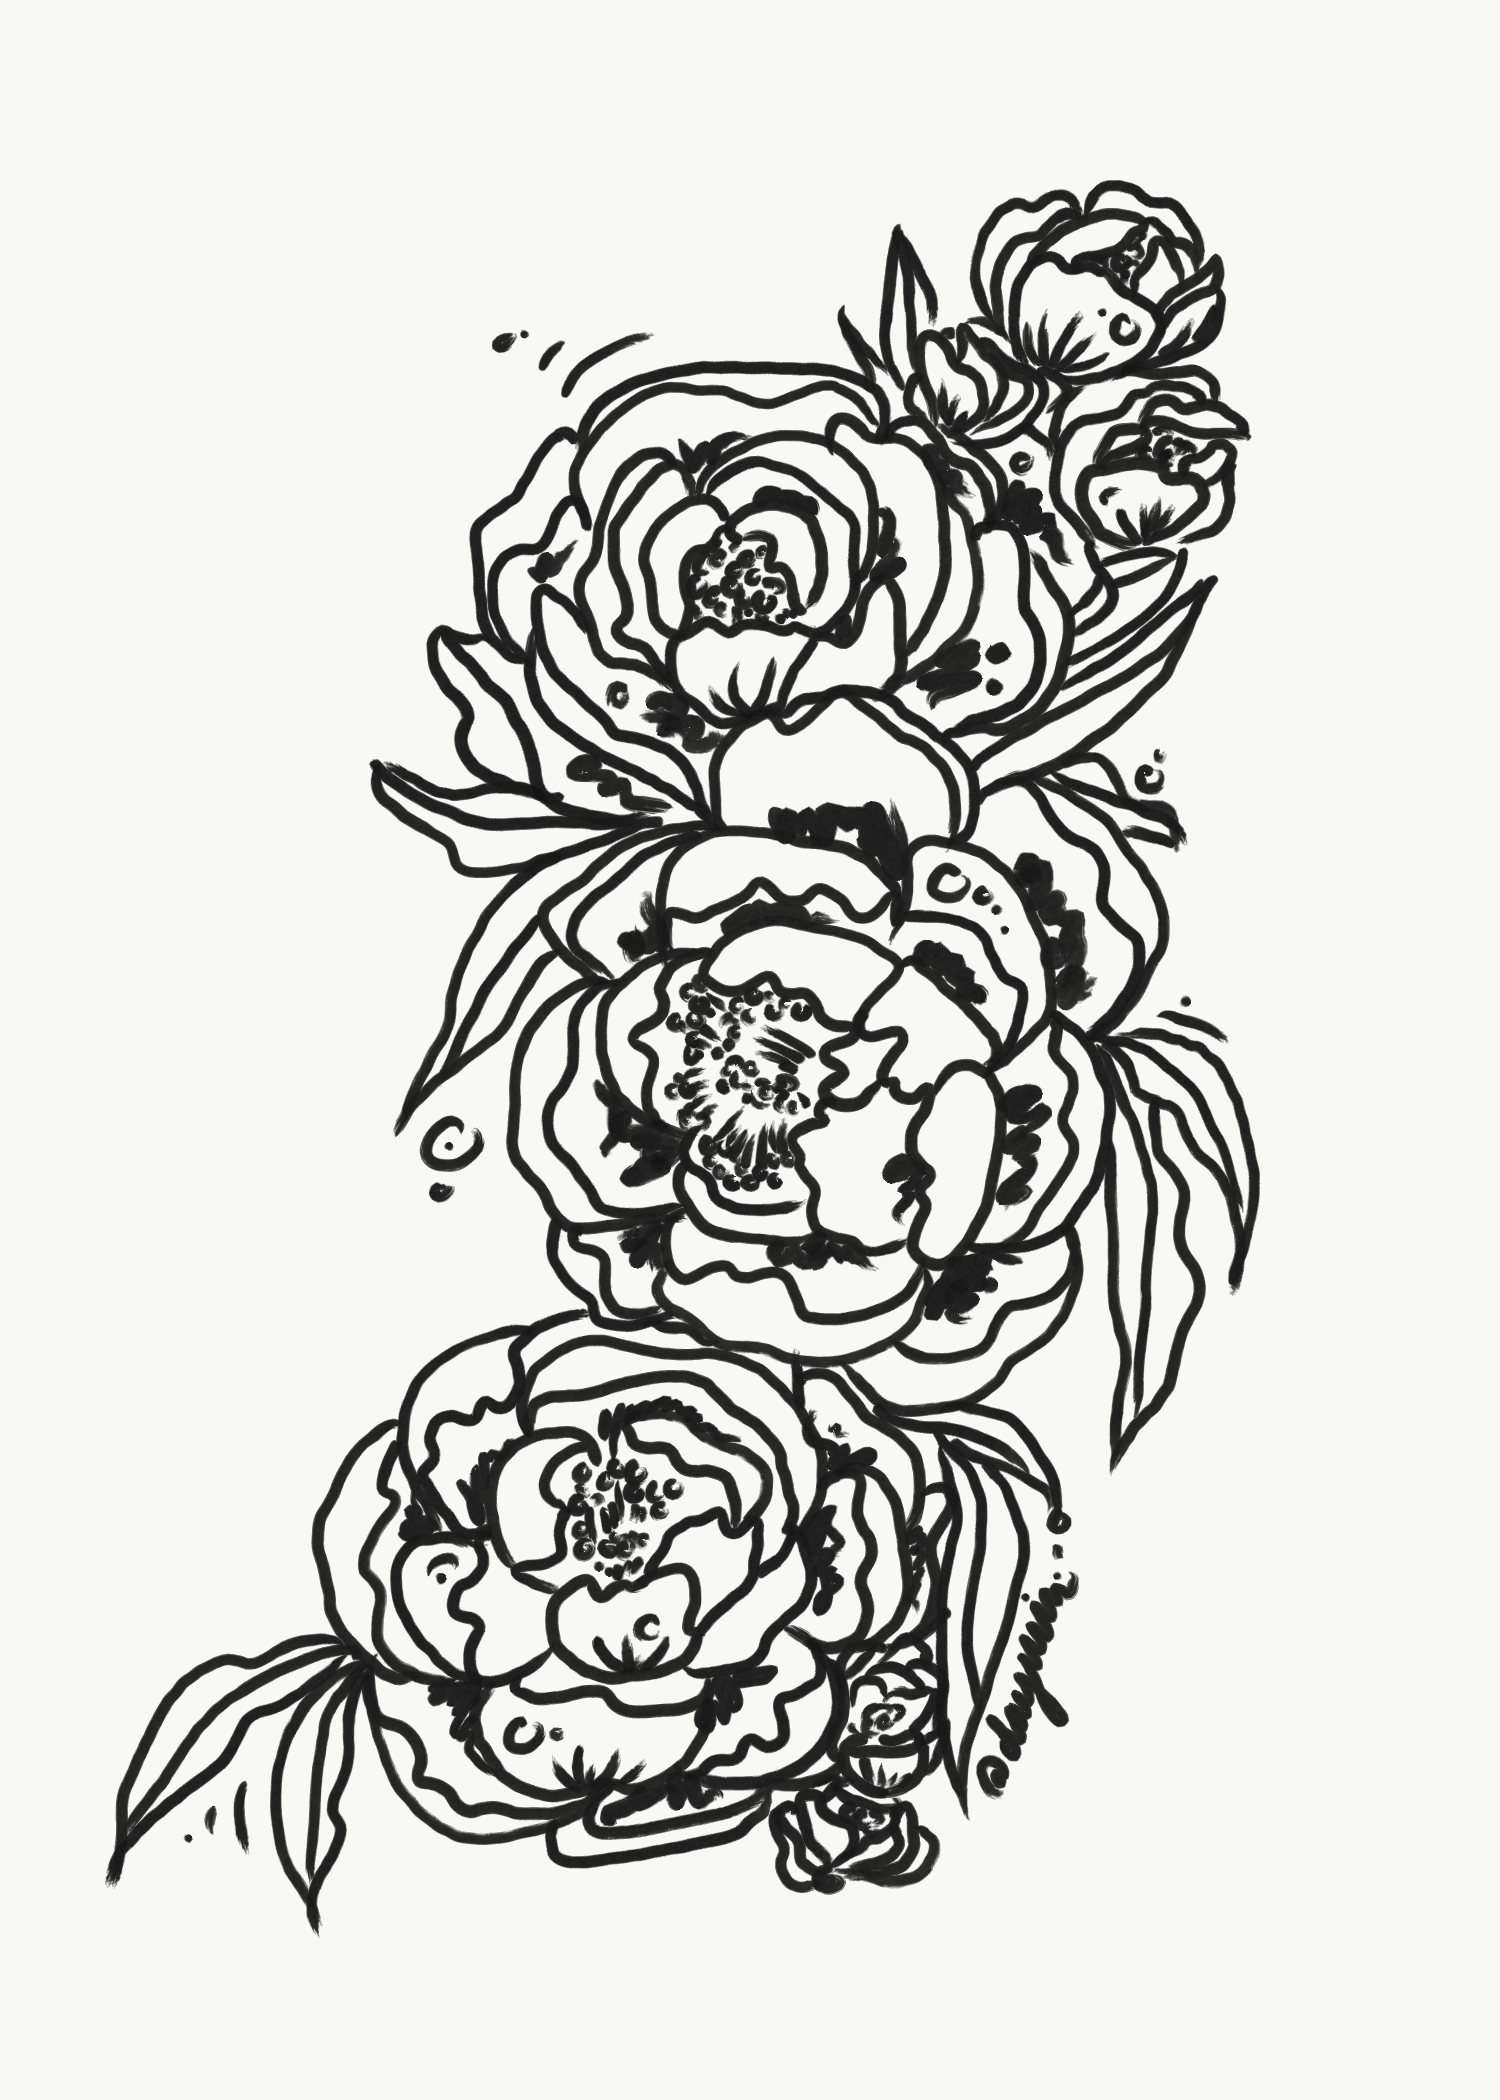 Peonies Creative Tattoo Design Of Peone Flowers In Black And White